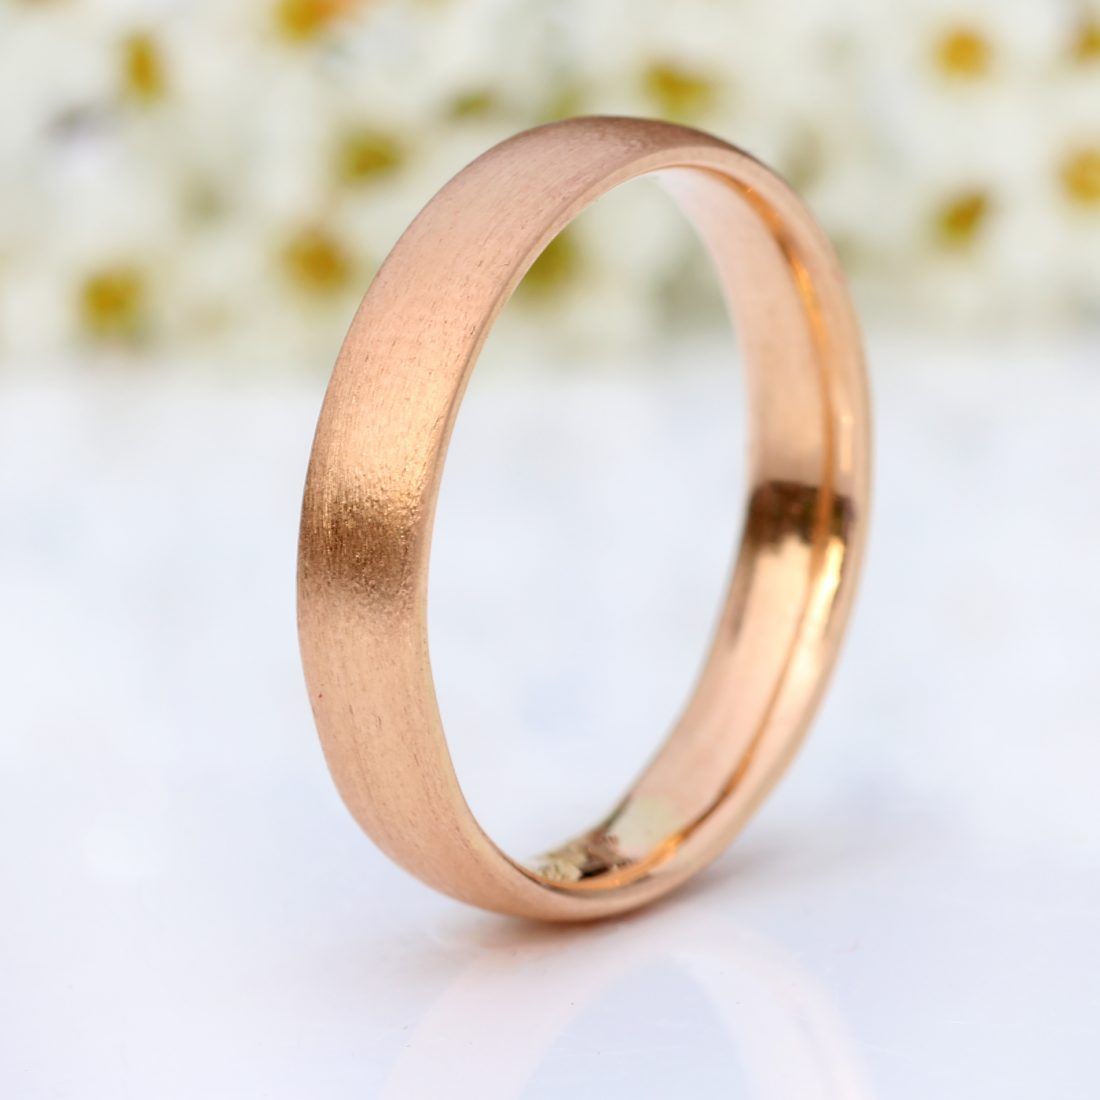 4mm 18ct rose gold comfort fit wedding ring